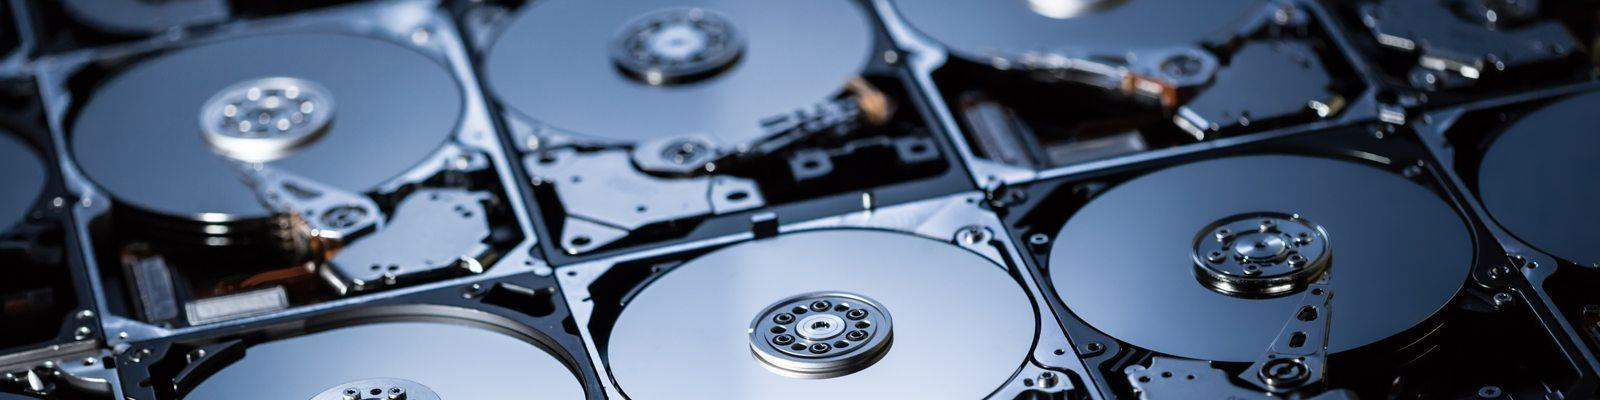 Hard Drive Reliability at Cloud Scale